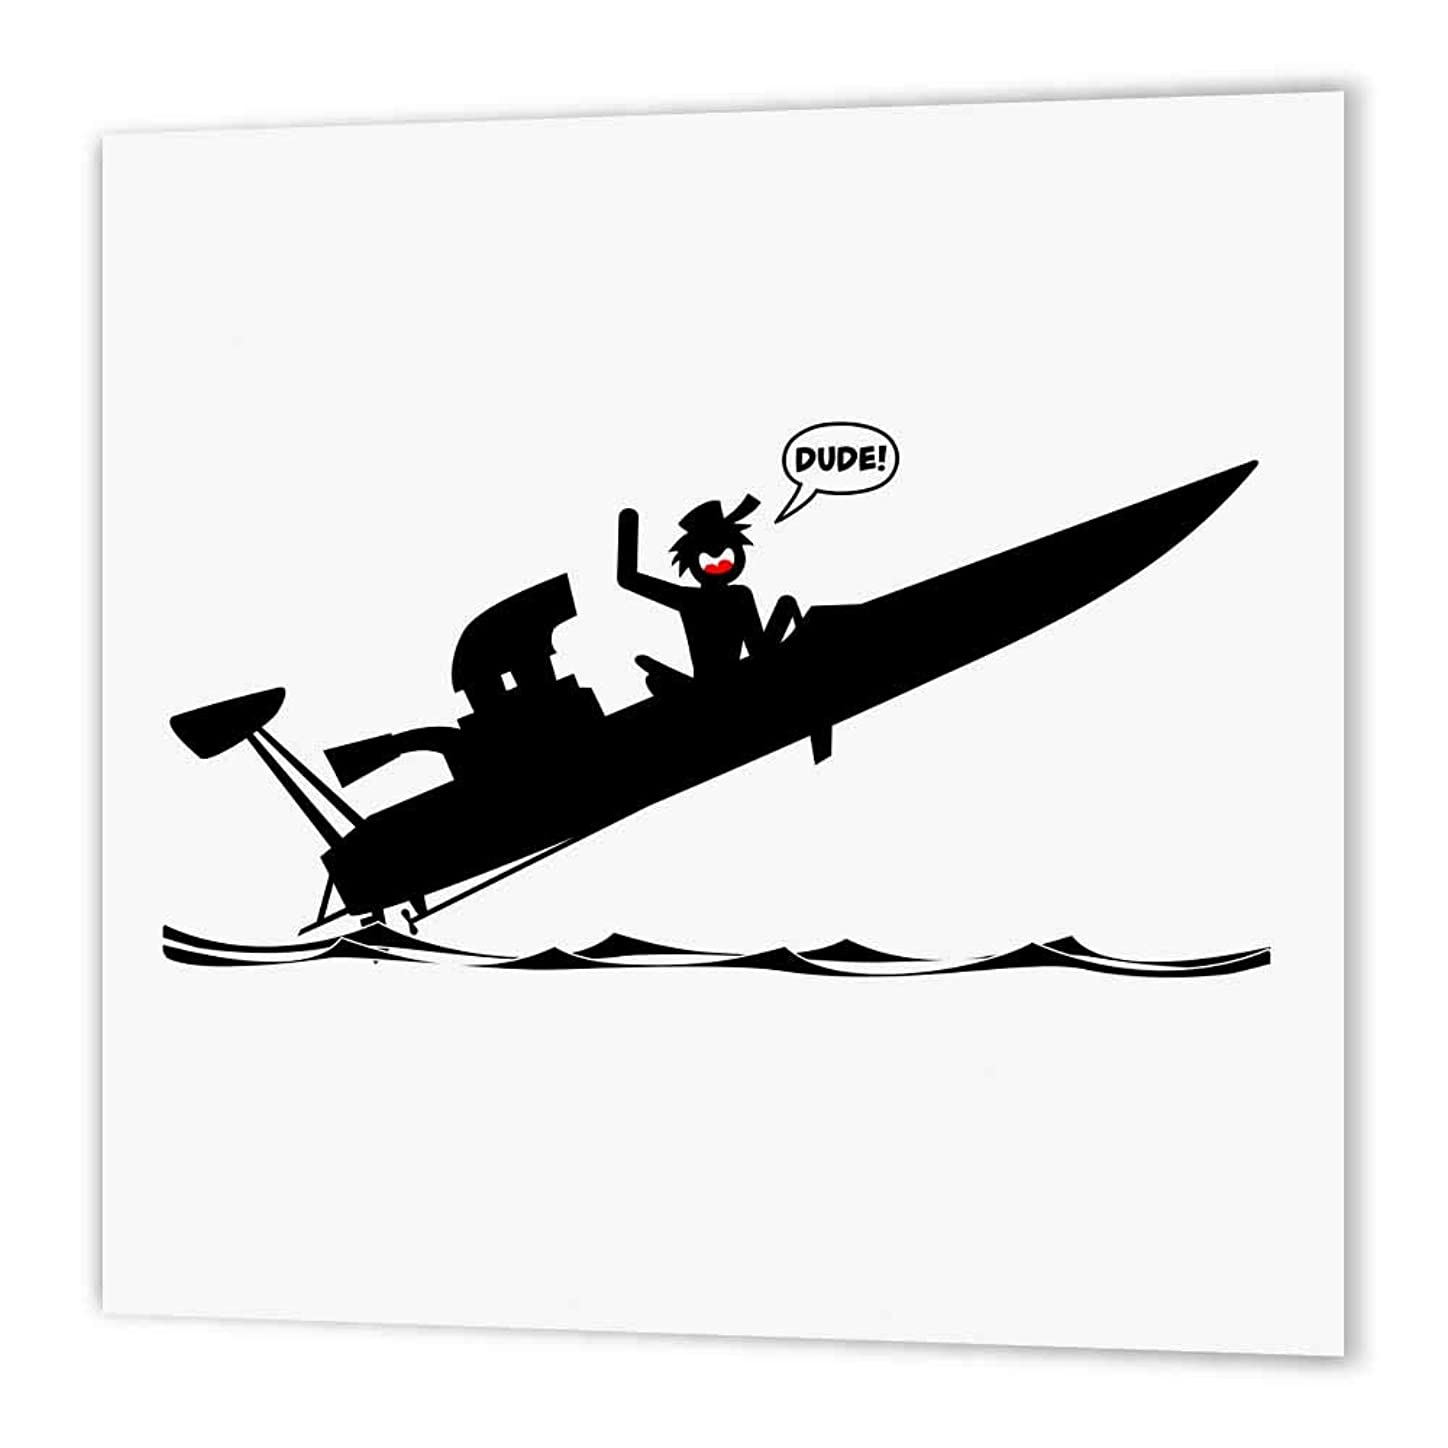 3dRose ht_180562_1 An Image of a Stickman Getting Air in a Drag Boat, Dude Word Balloon-Iron on Heat Transfer Paper for White Material, 8 by 8-Inch bcauybw831370